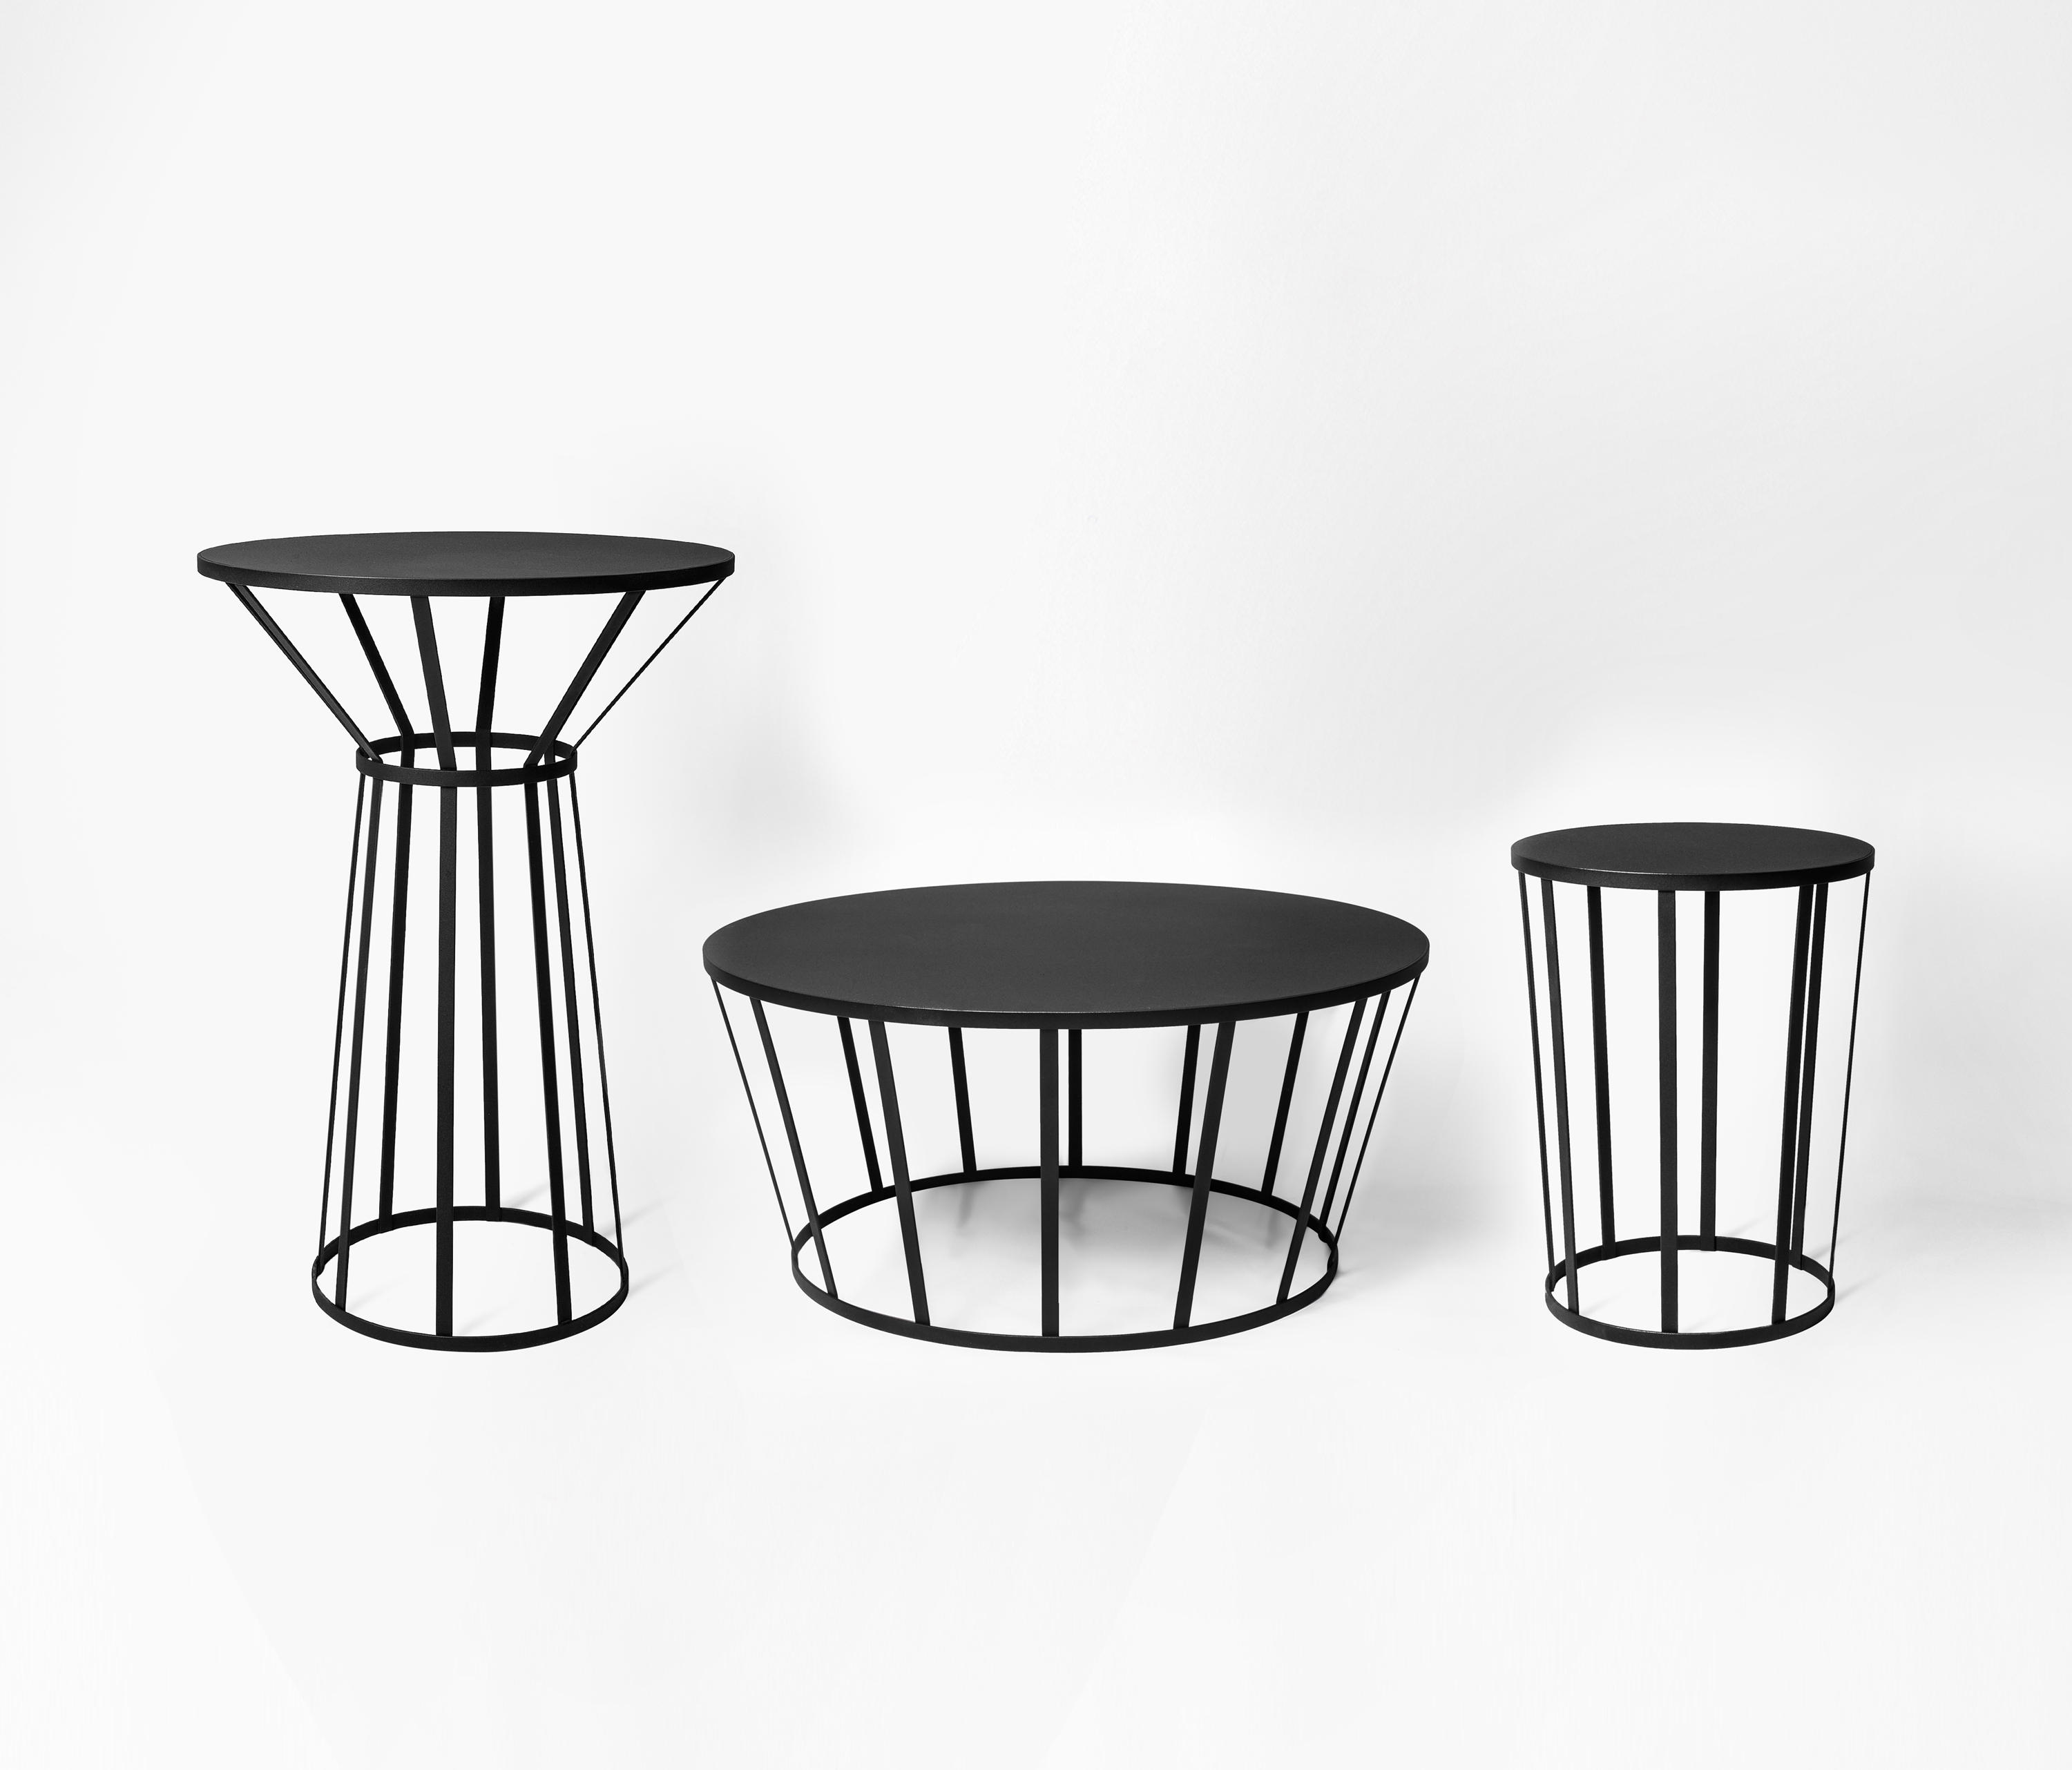 hollo stool garden stools from petite friture architonic. Black Bedroom Furniture Sets. Home Design Ideas